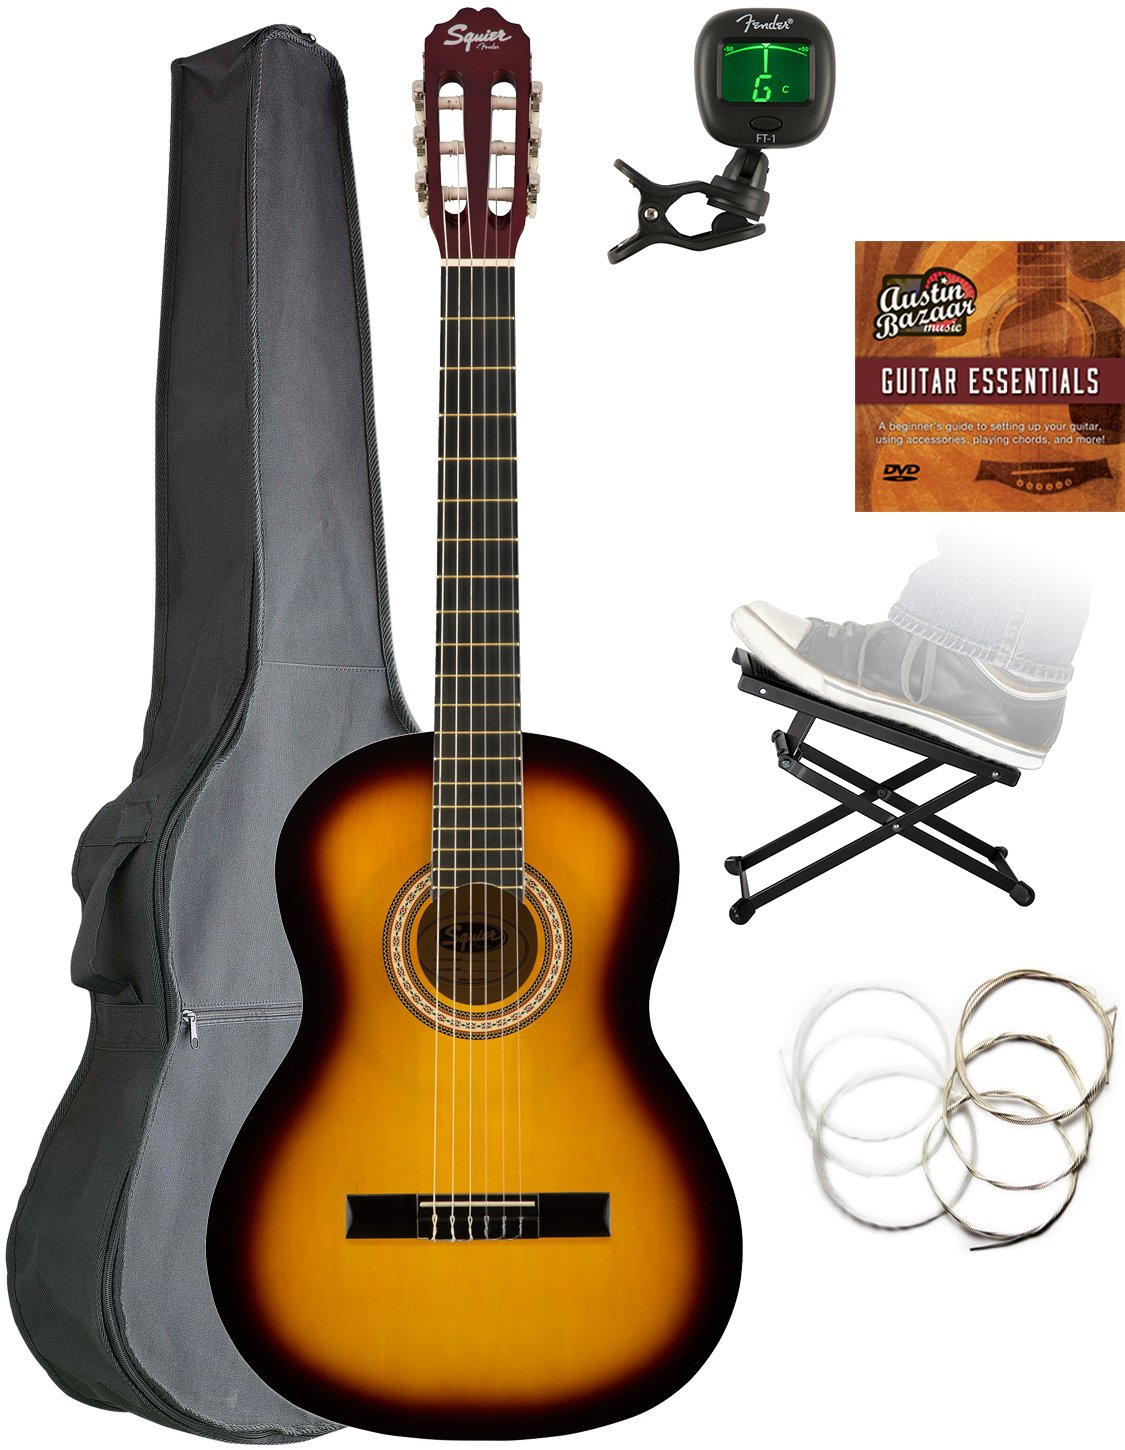 Squier by Fender SA-150 Dreadnought Acoustic Guitar - Gloss Black Finish (Amazon Exclusive) 961090006